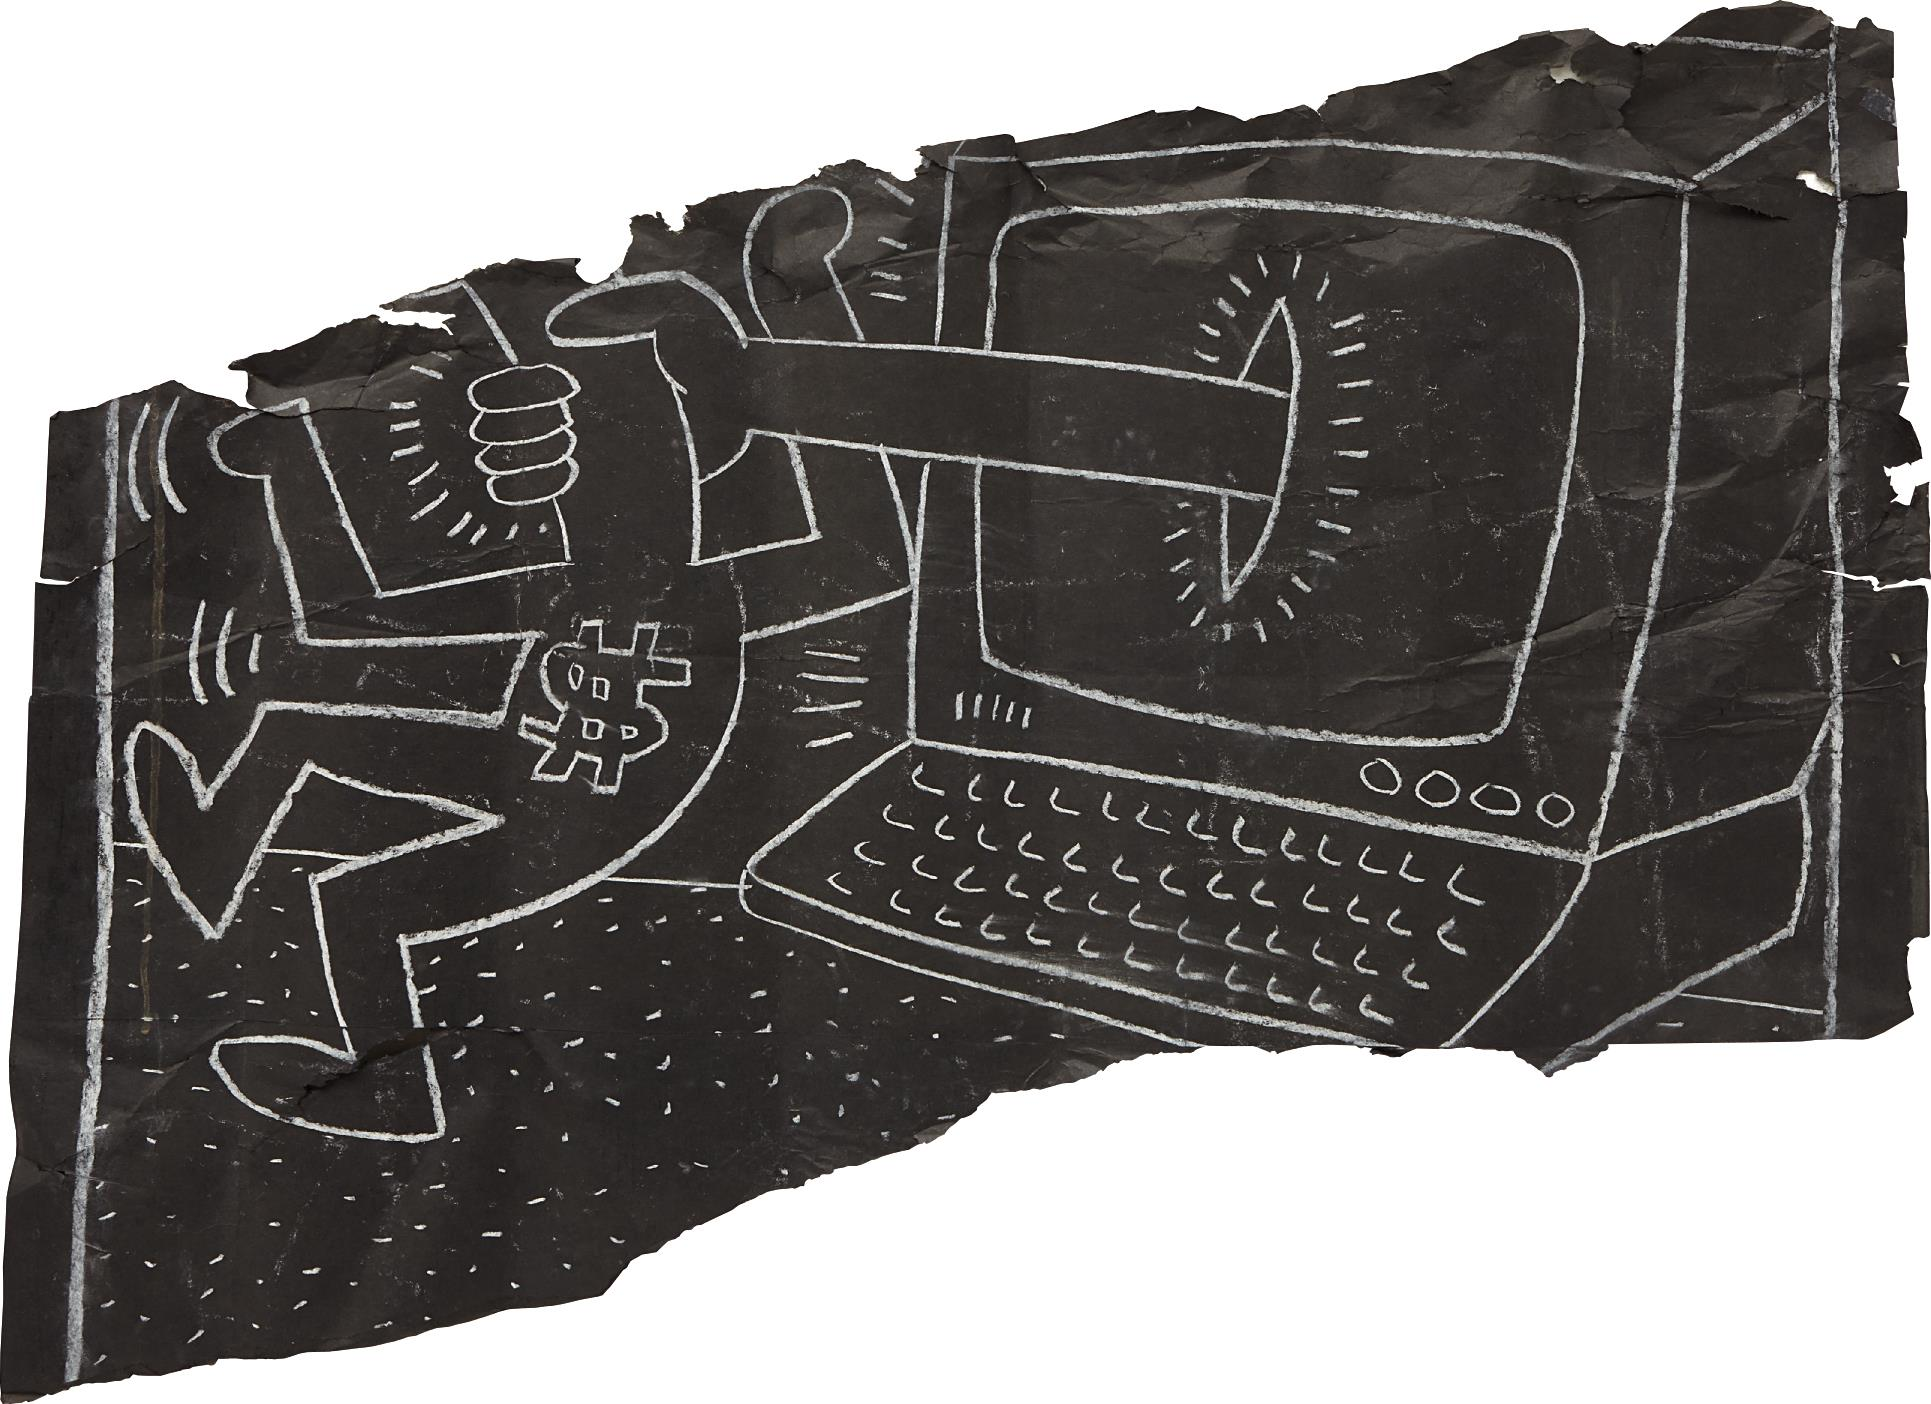 Keith Haring-It's Not A Laptop-1985